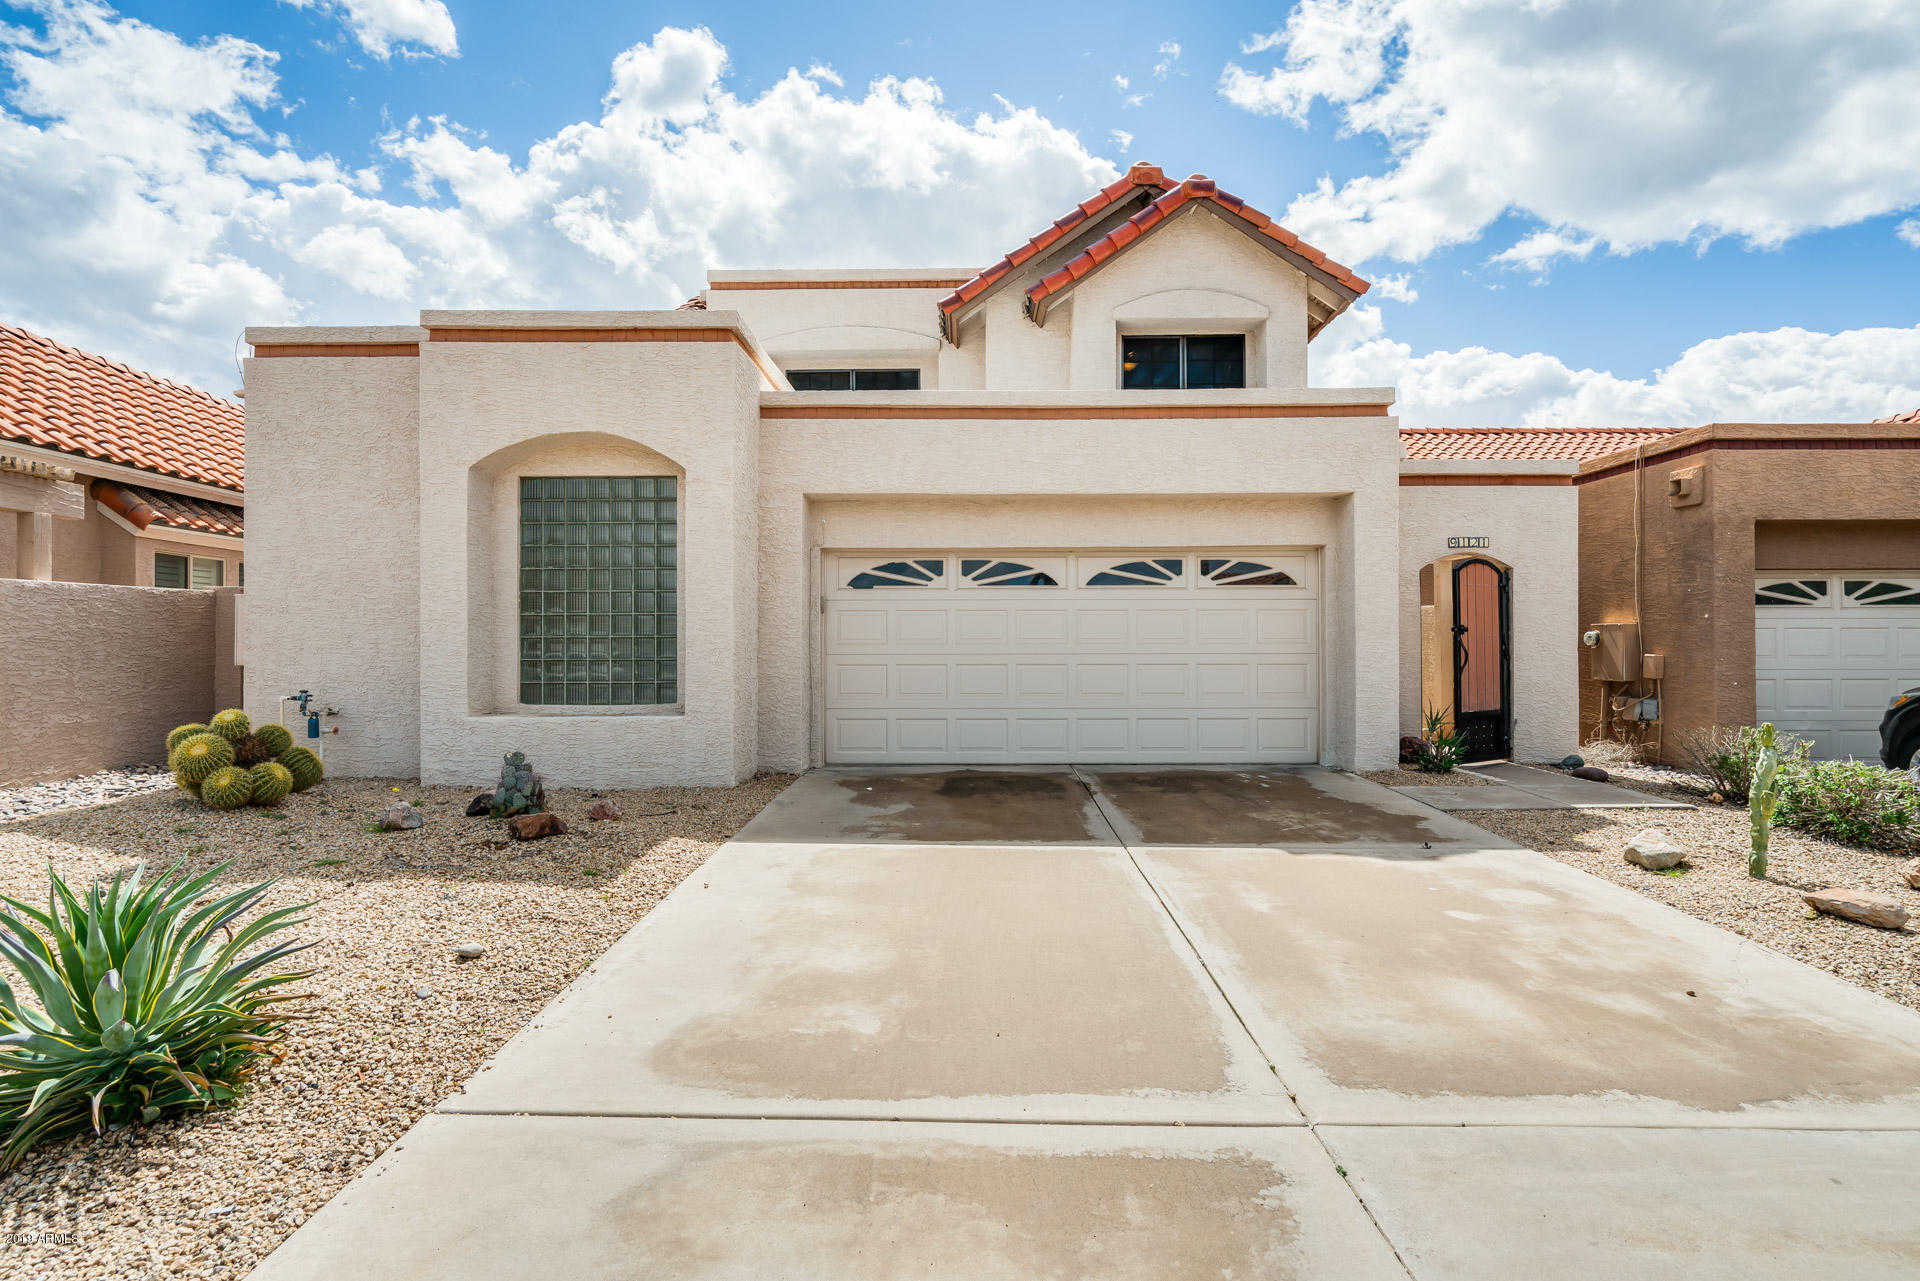 $402,900 - 3Br/3Ba - Home for Sale in Retreat Lot 1-96 Tract A-c, Scottsdale